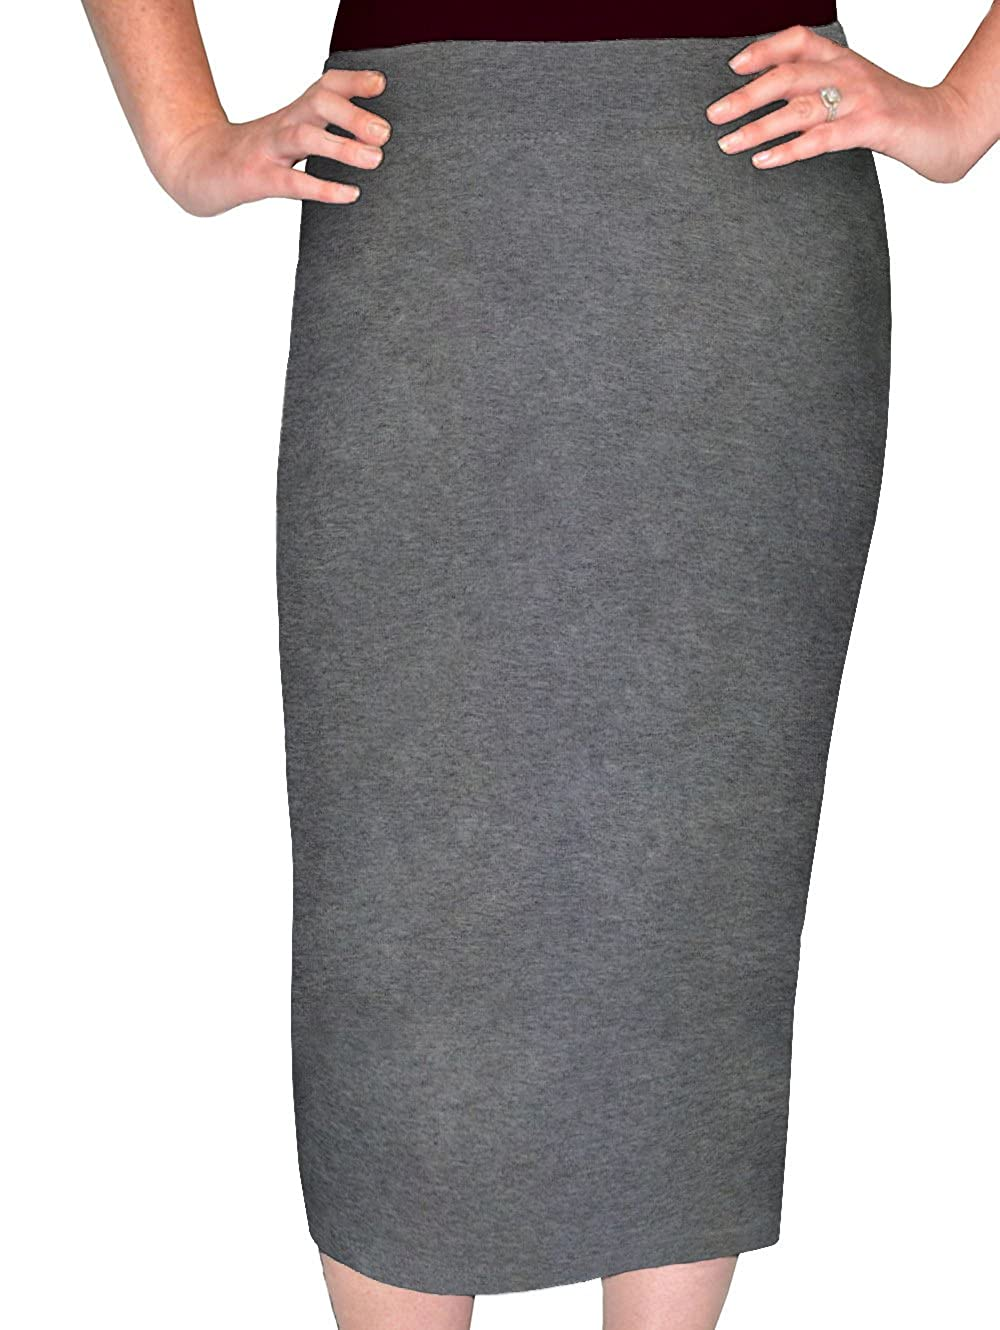 562588078d8 Midi pencil skirt with a close fit that tapers in at the hem. Fashionable  retro length